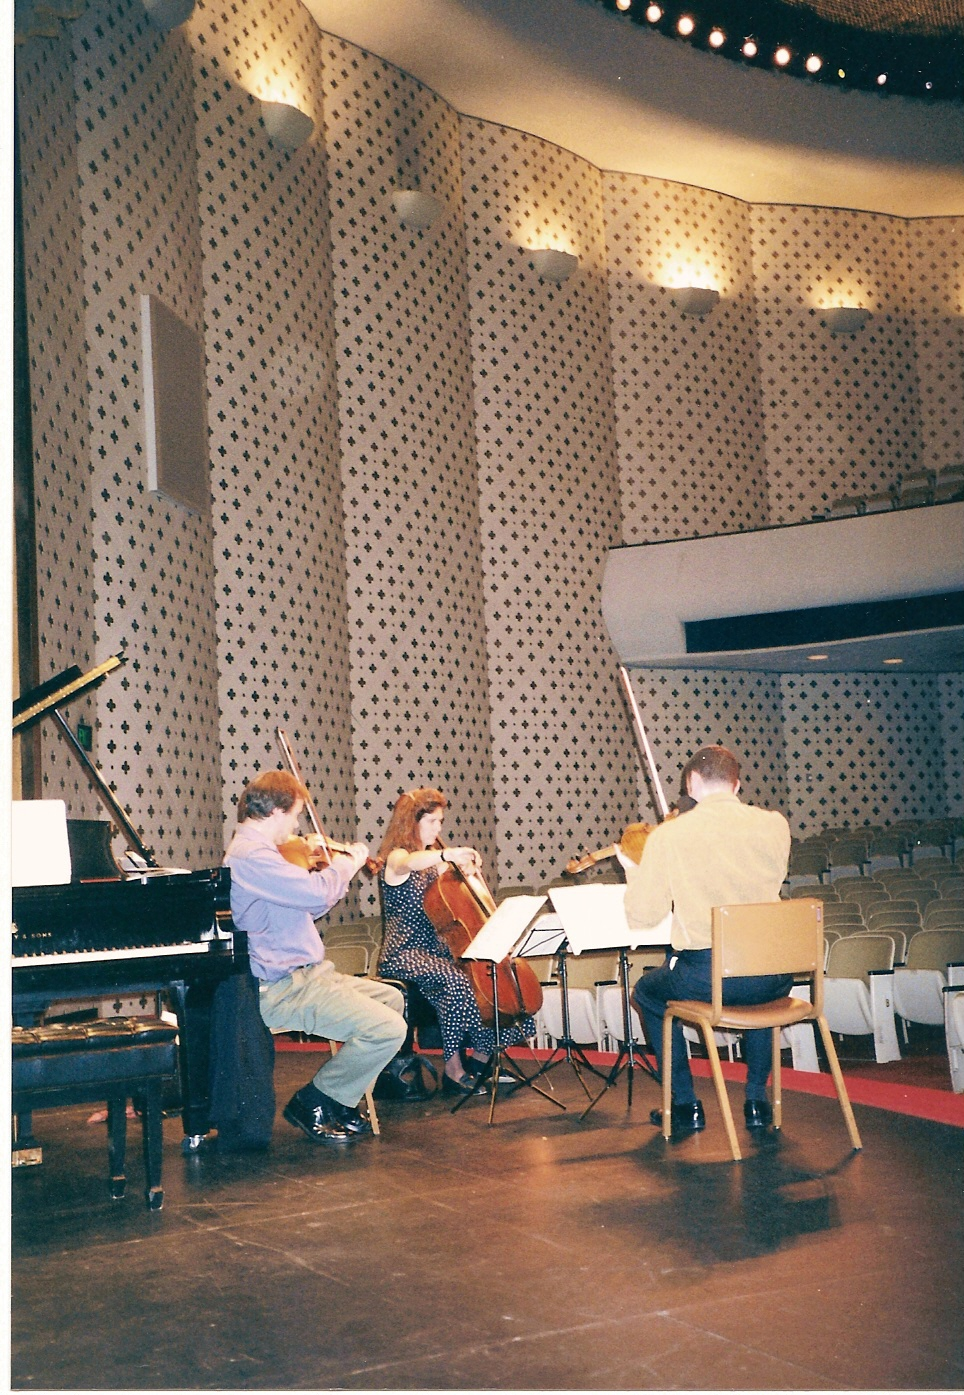 rehearsing at Caltec, Los Angeles Jan 99